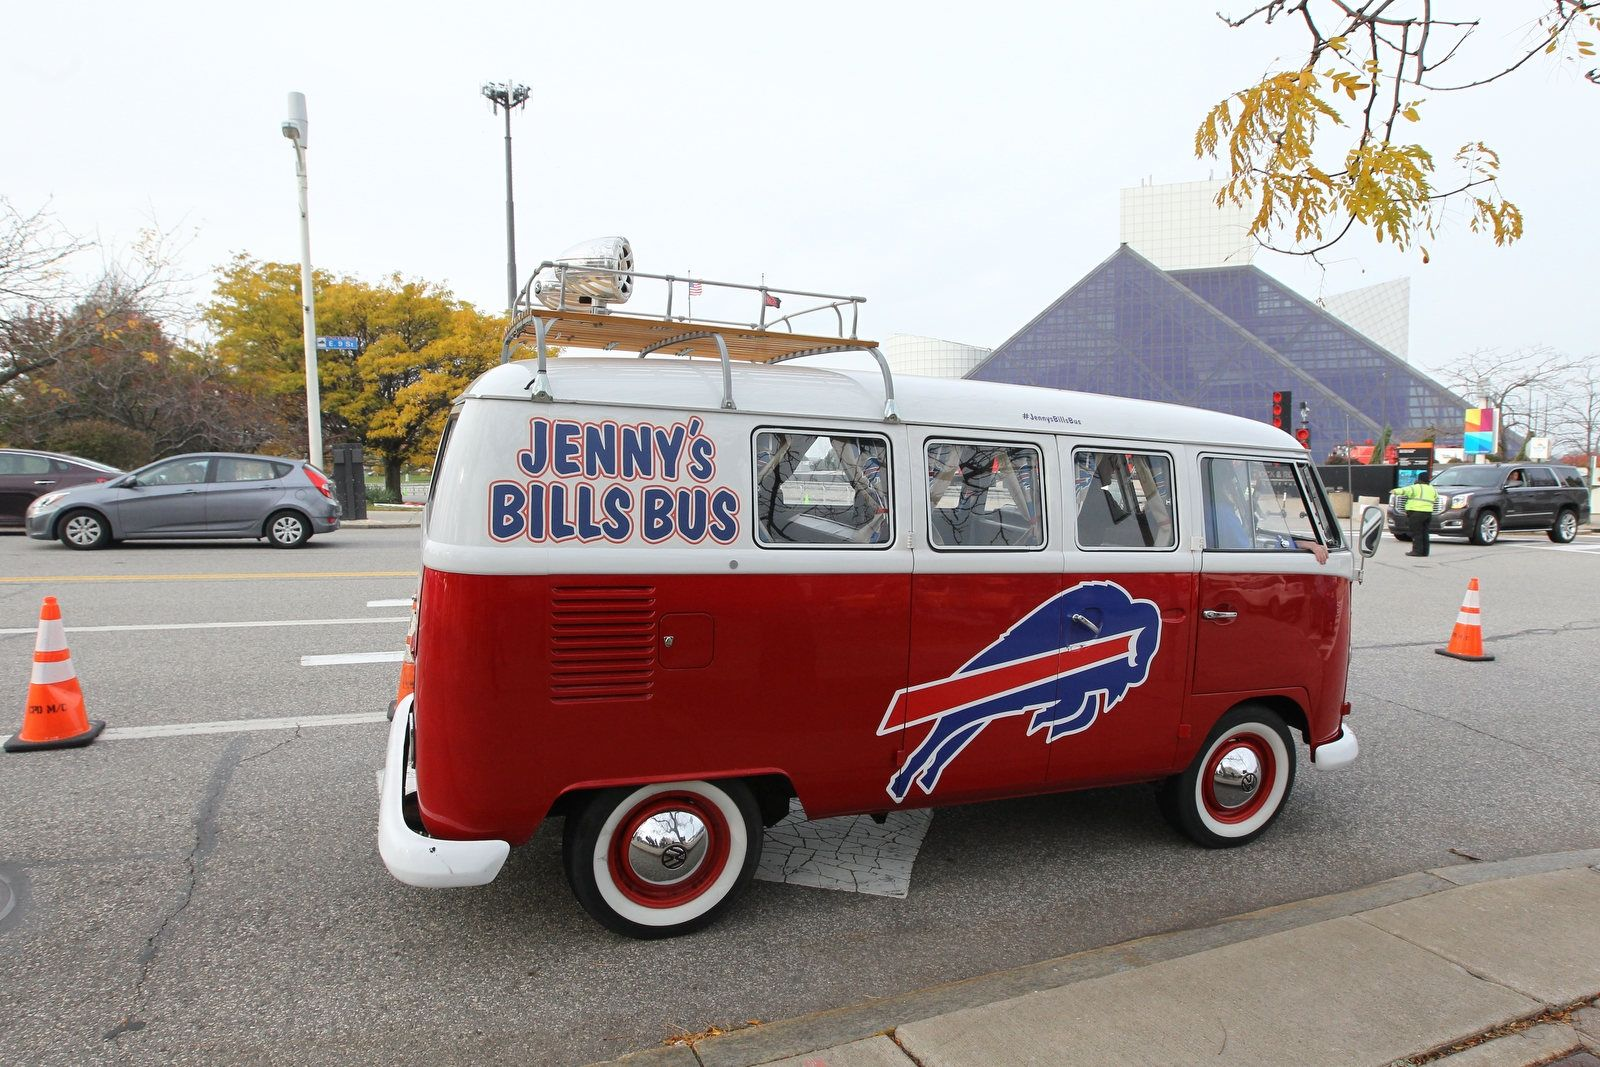 Buffalo Bills fans party before the game in the municipal lot across the street from FirstEnergy Stadium in Cleveland on Sunday, Nov. 10, 2019.